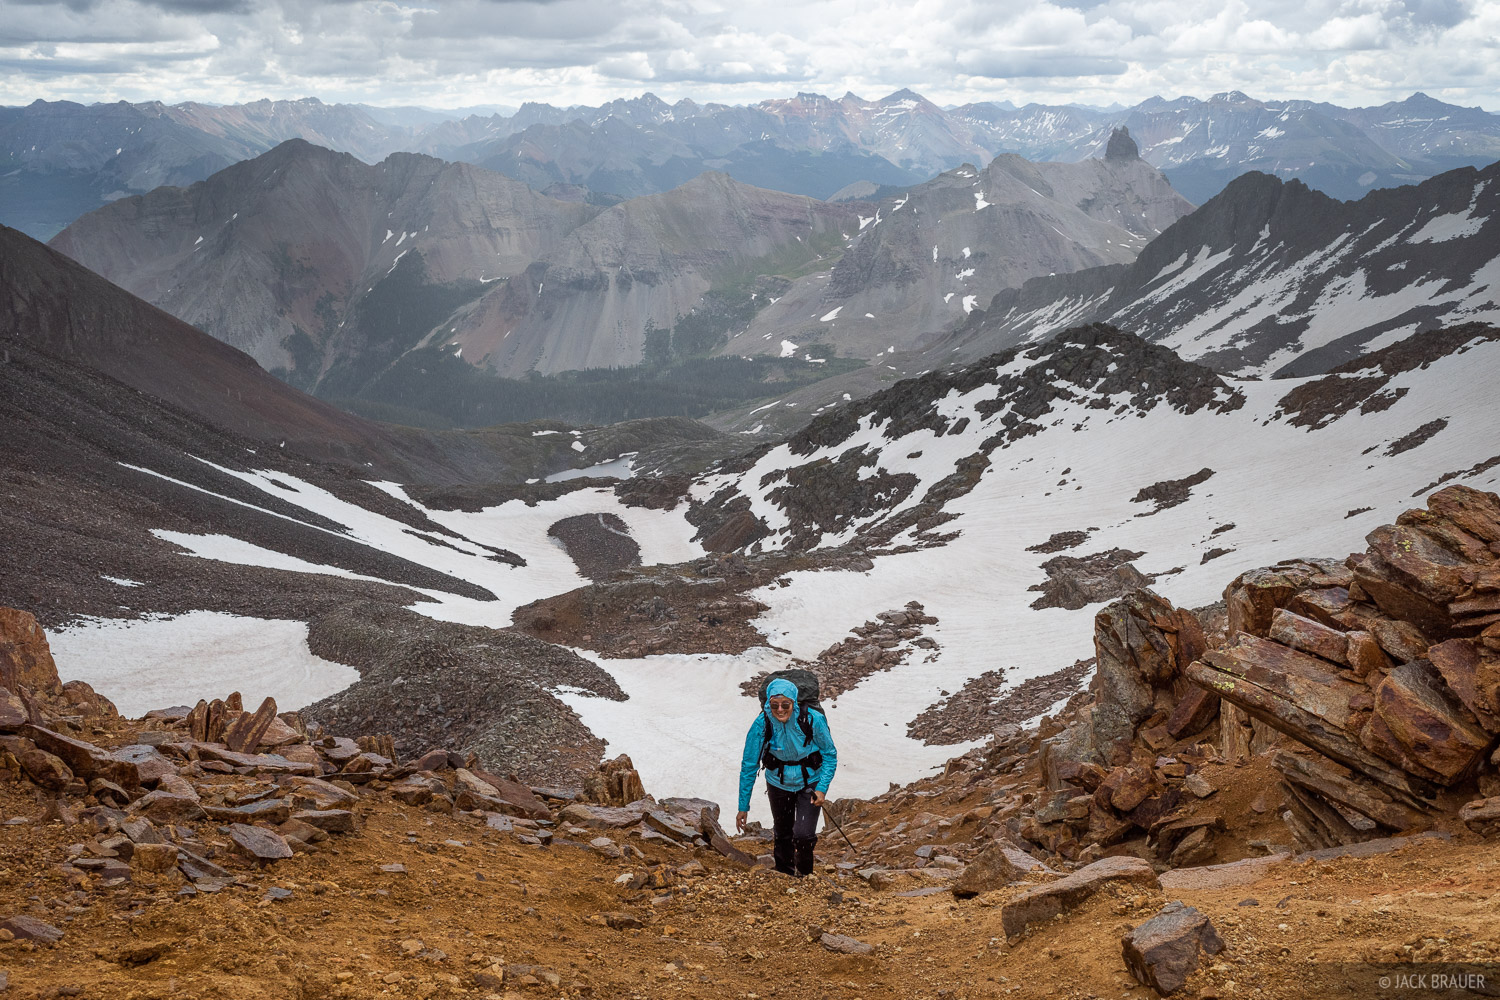 Claudia arrives at a 13,200-foot pass below Wilson Peak, just as hail starts to fall.